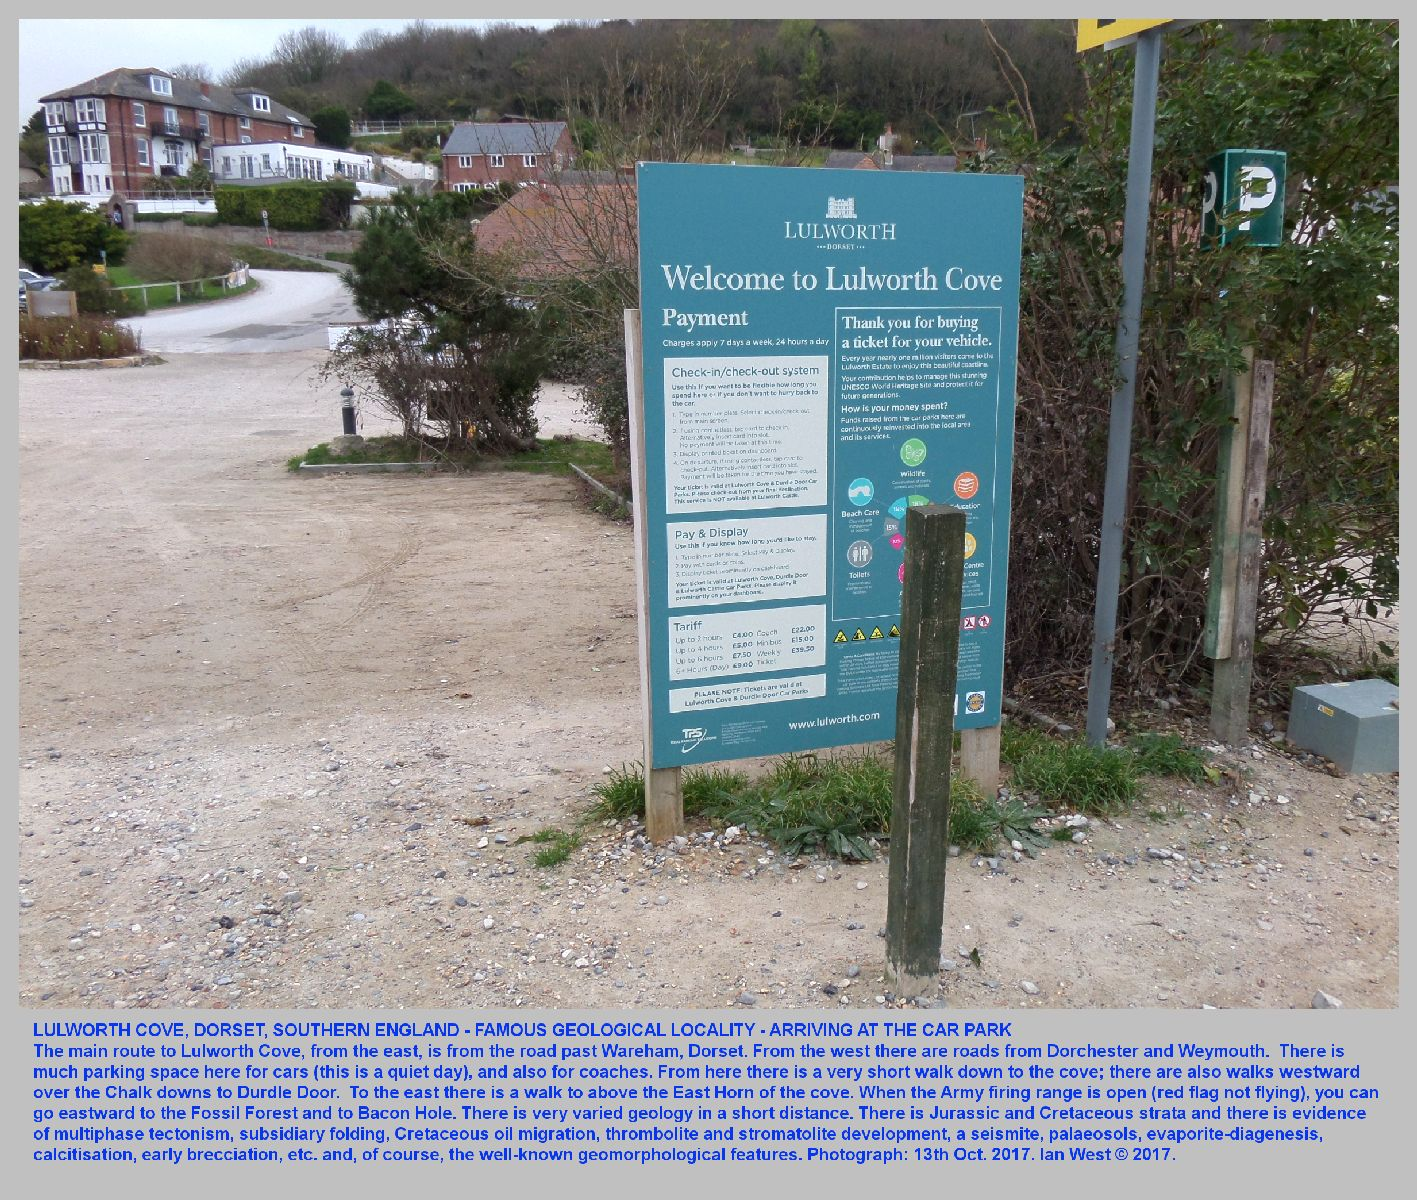 Lulworth Cove - Introduction, Geological Field Guide - By Dr